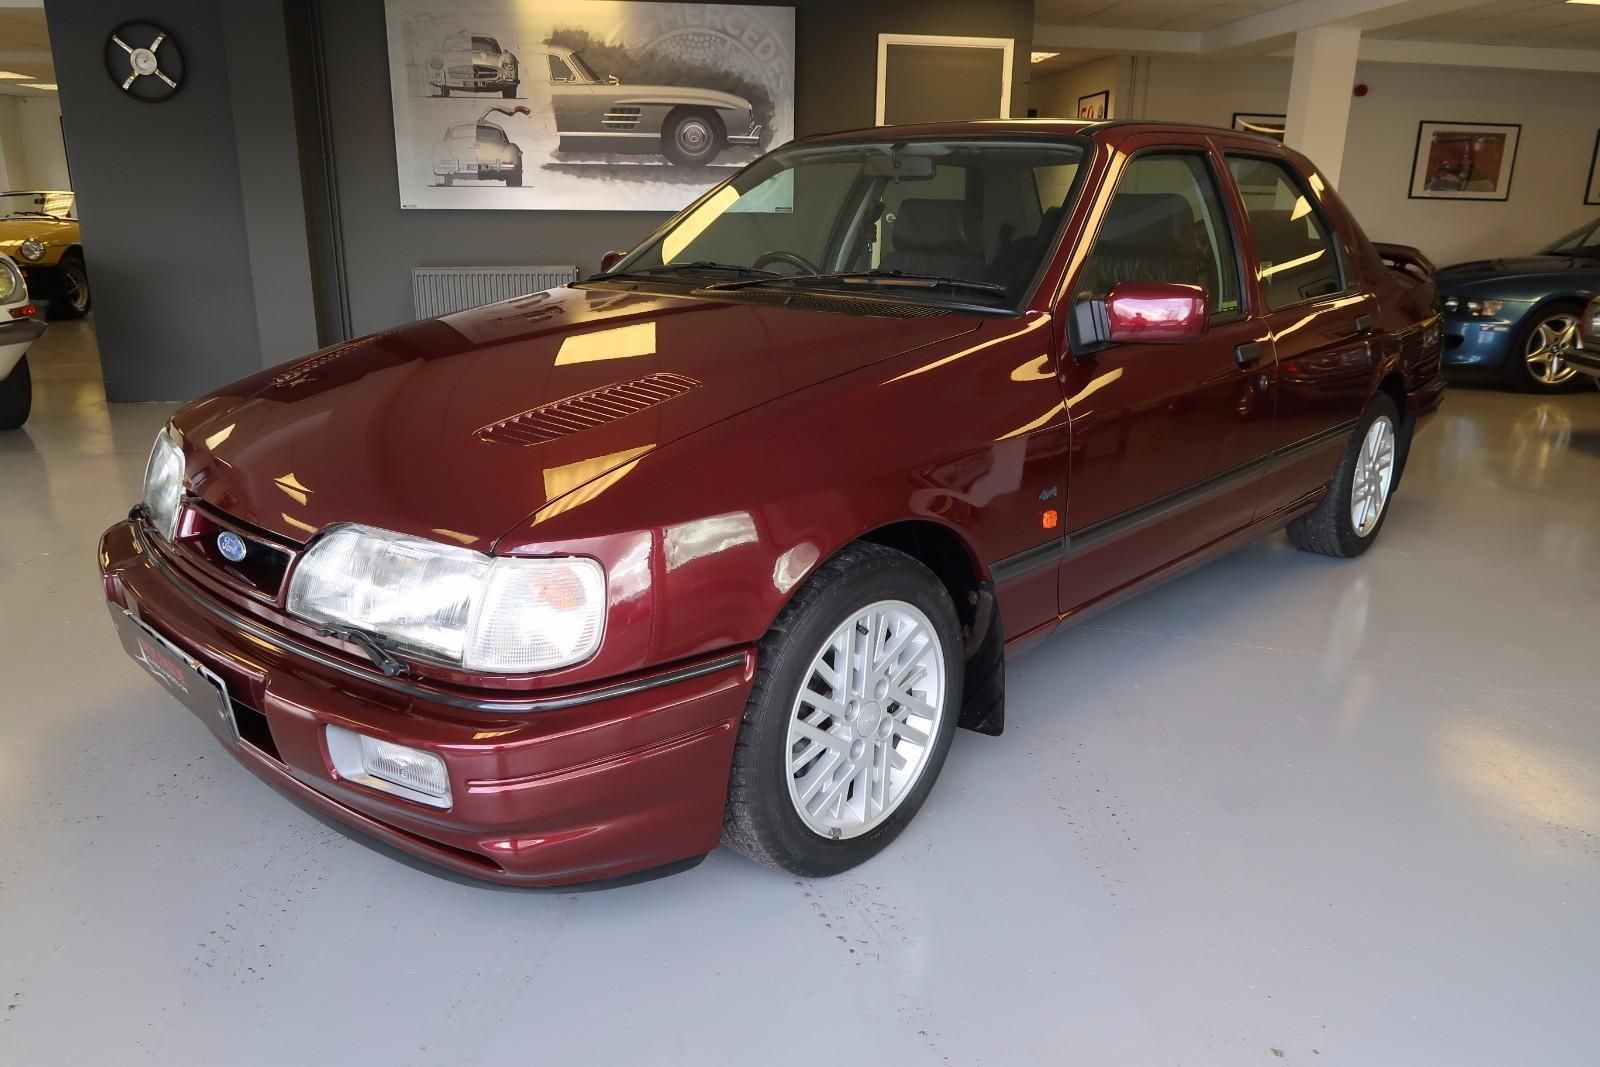 This ford sierra sapphire 2.0 rs cosworth 4x4 13,000 miles one owner is on  eBay.